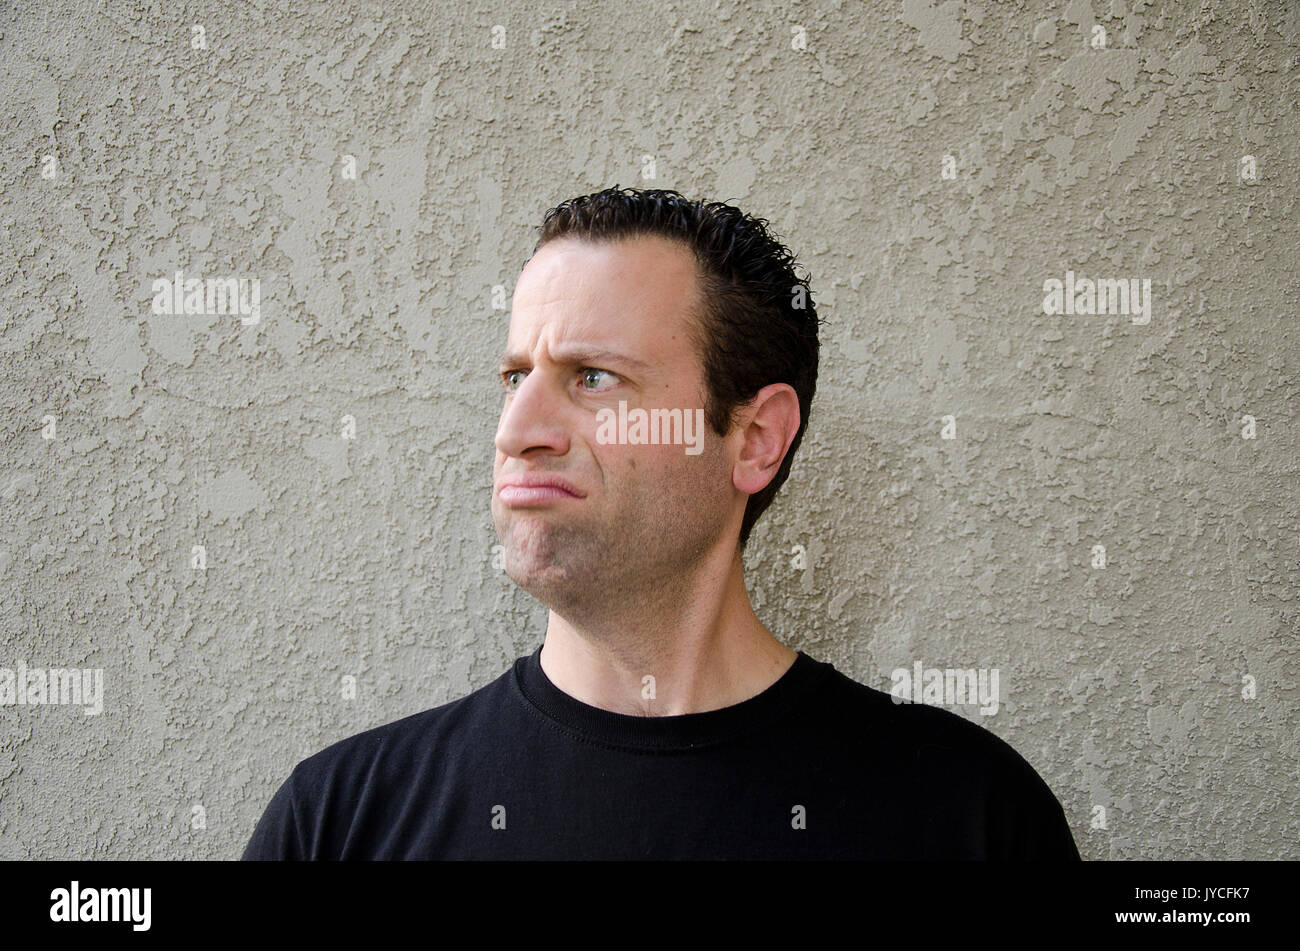 Man in front of a beige background making a disgruntled face looking to the left. - Stock Image